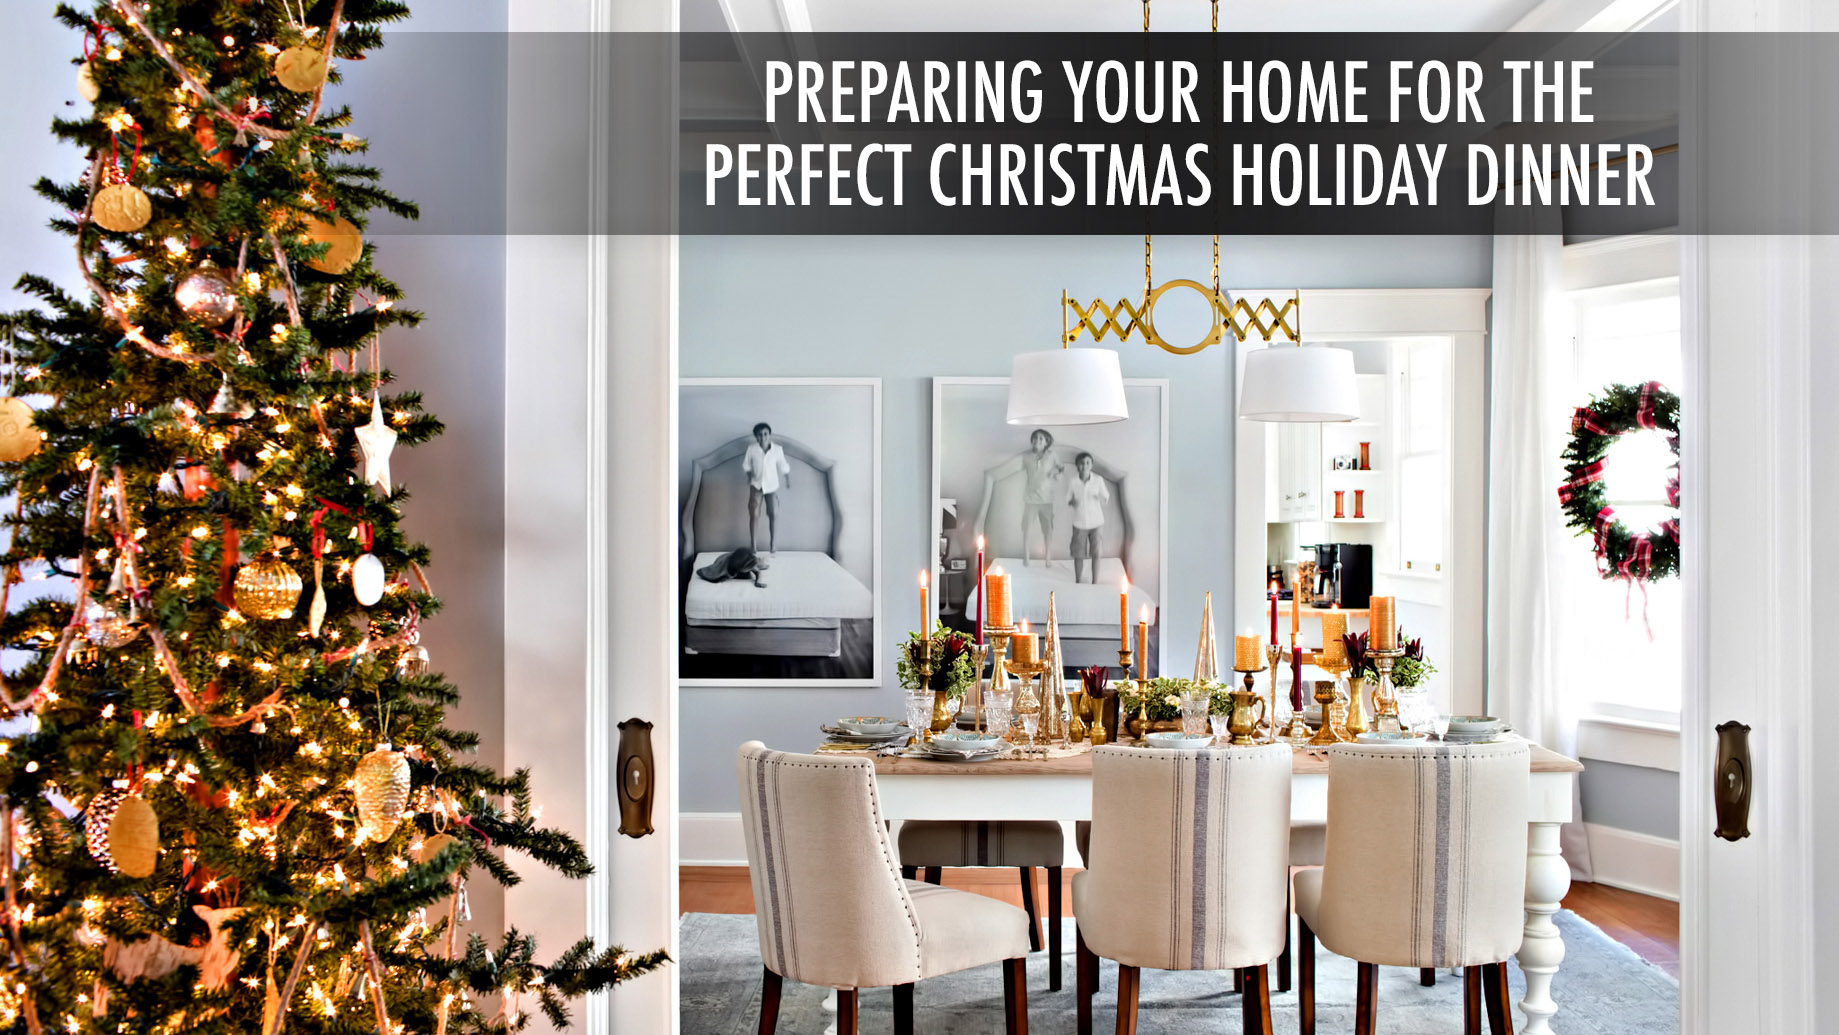 Preparing Your Home for the Perfect Christmas Holiday Dinner